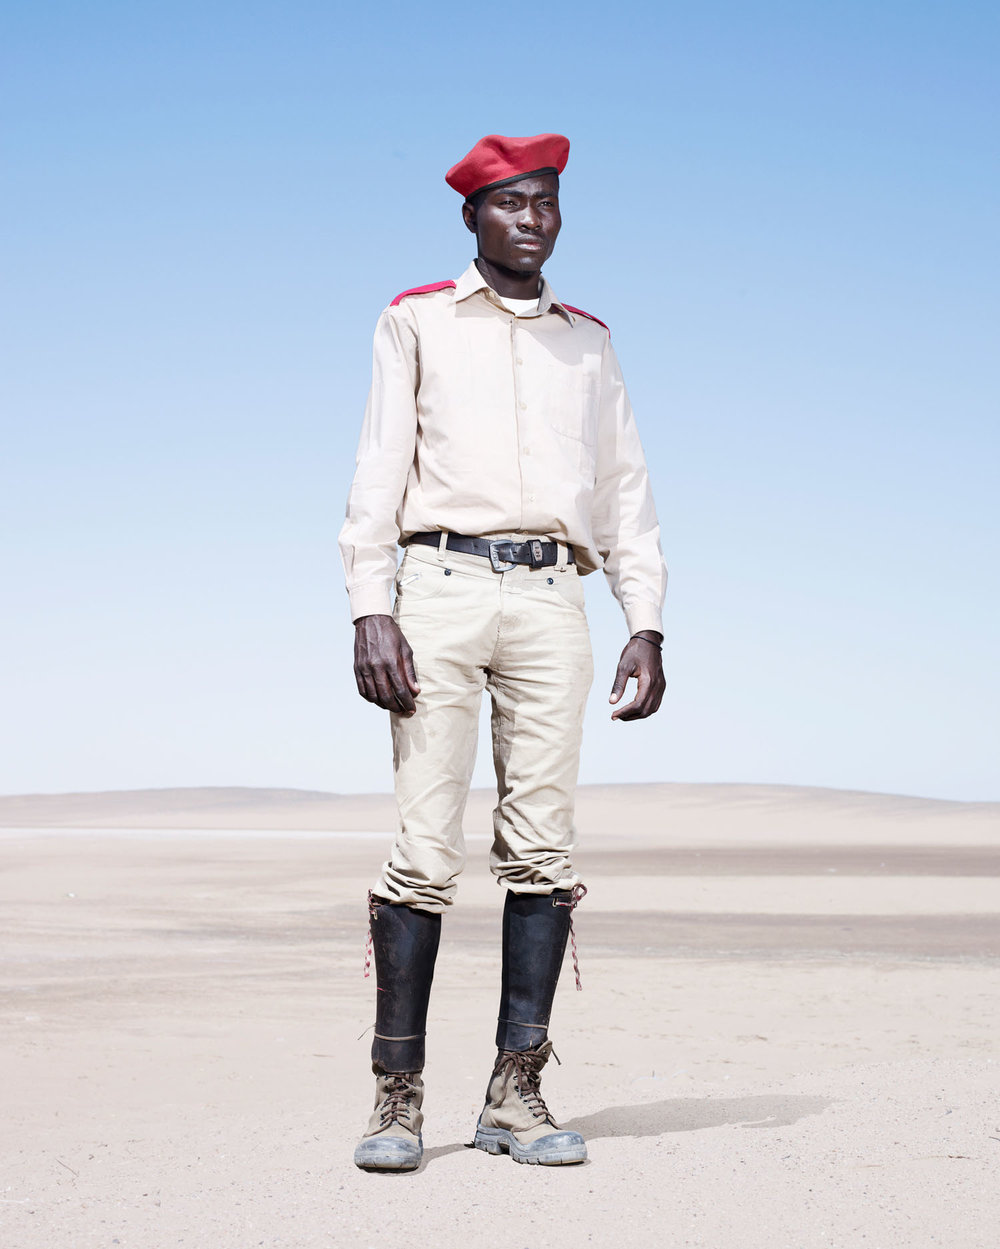 Herero Soldier In Red Beret (2012)